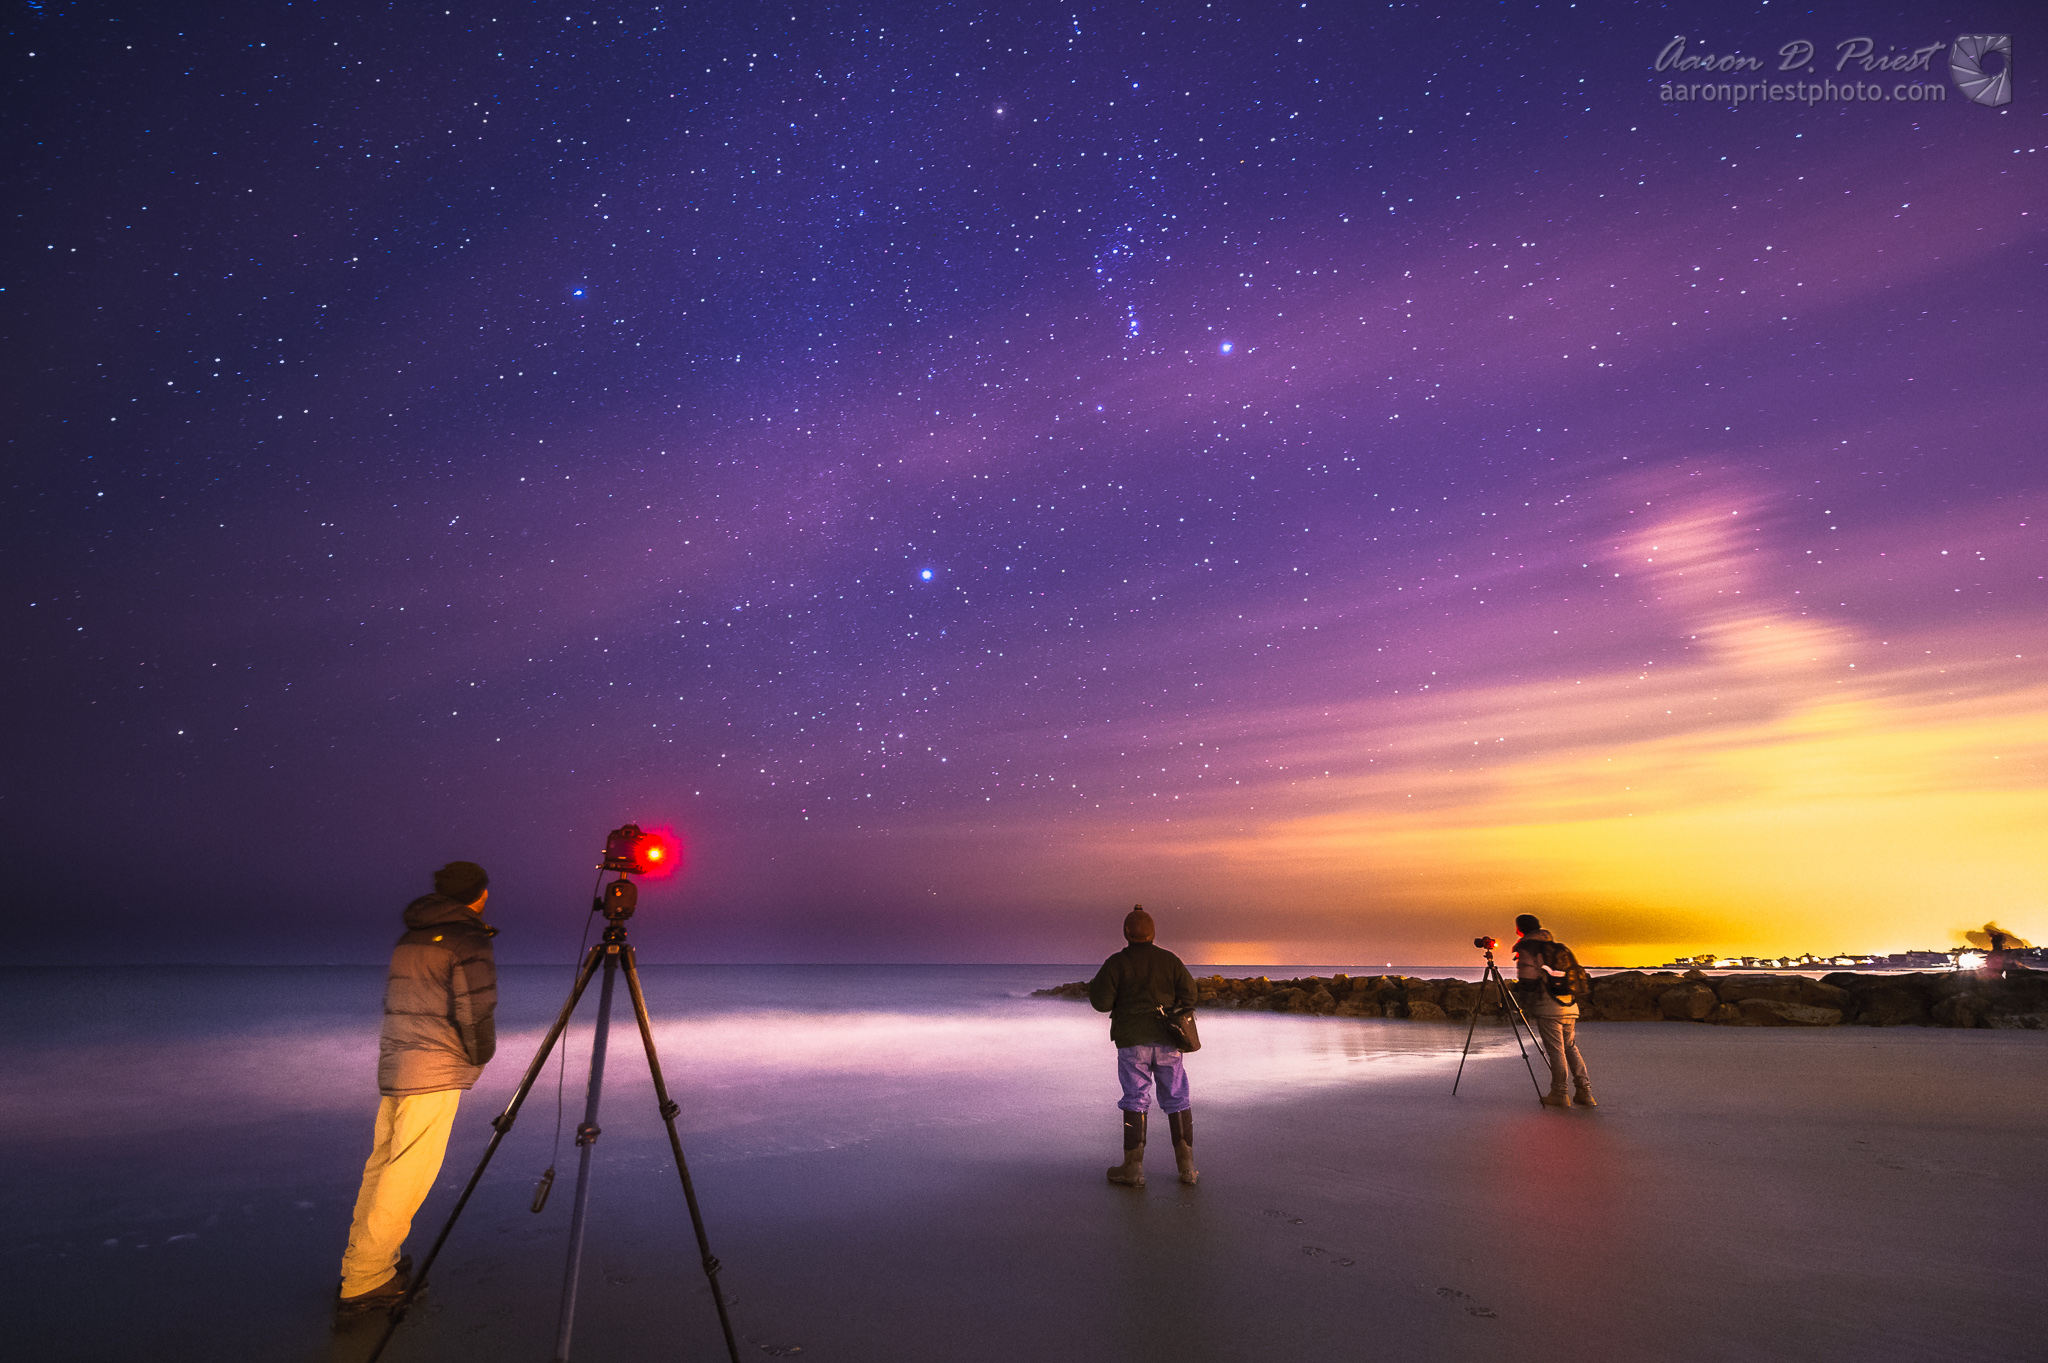 Orion's Stars Shine Over Stargazers on Wintry Shore in Amazing Photos